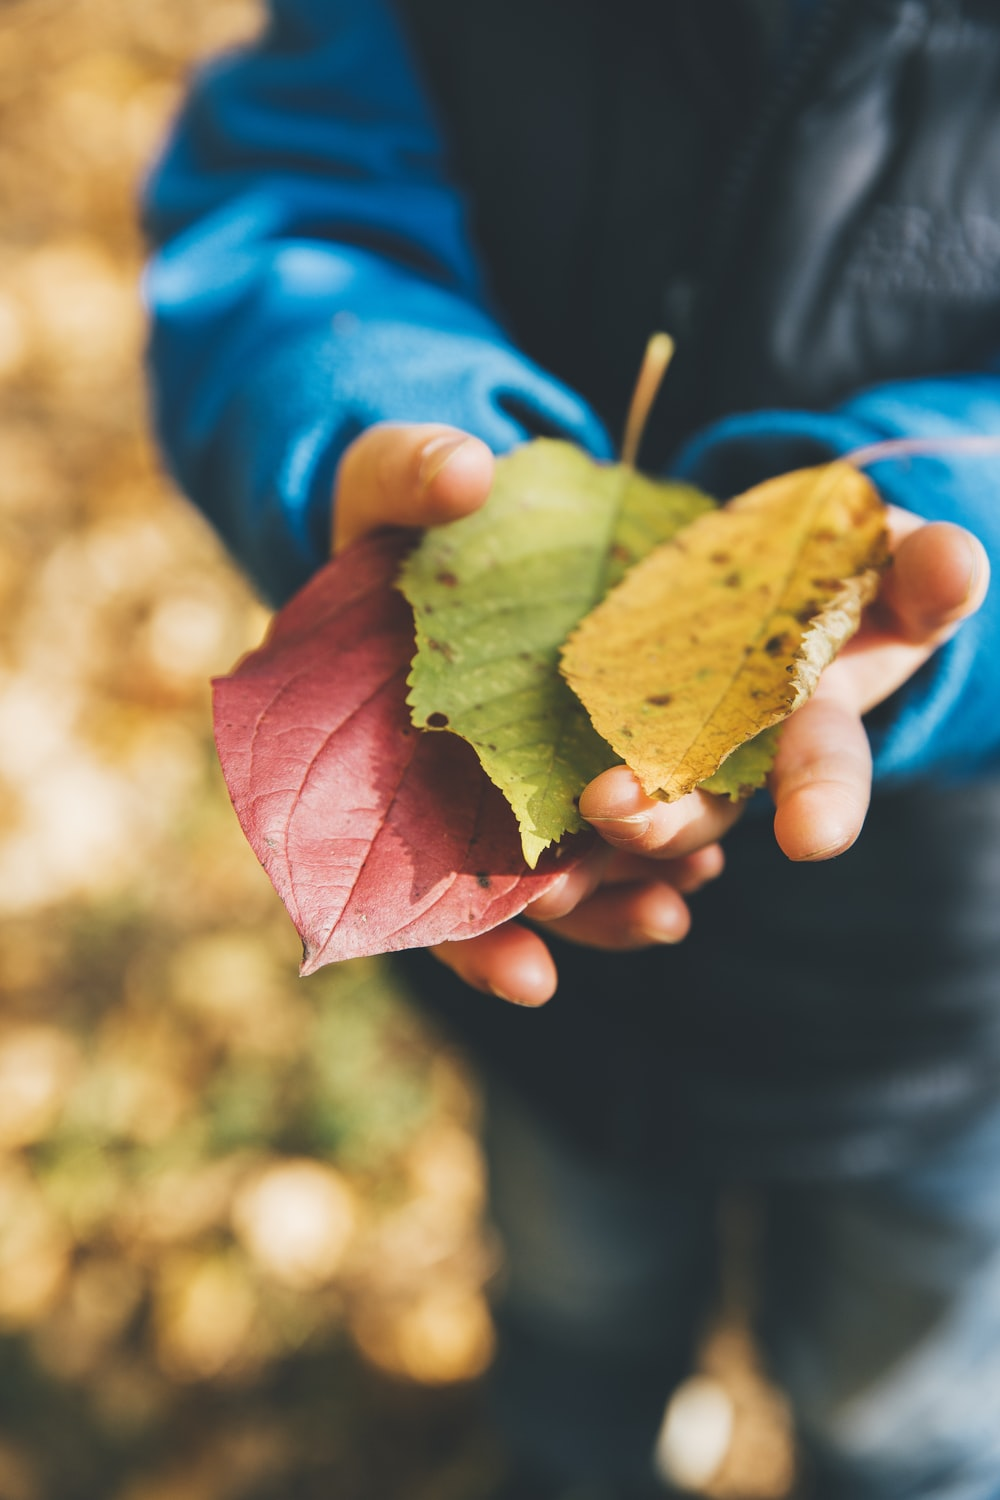 three green, yellow, and red leaves on person's hand